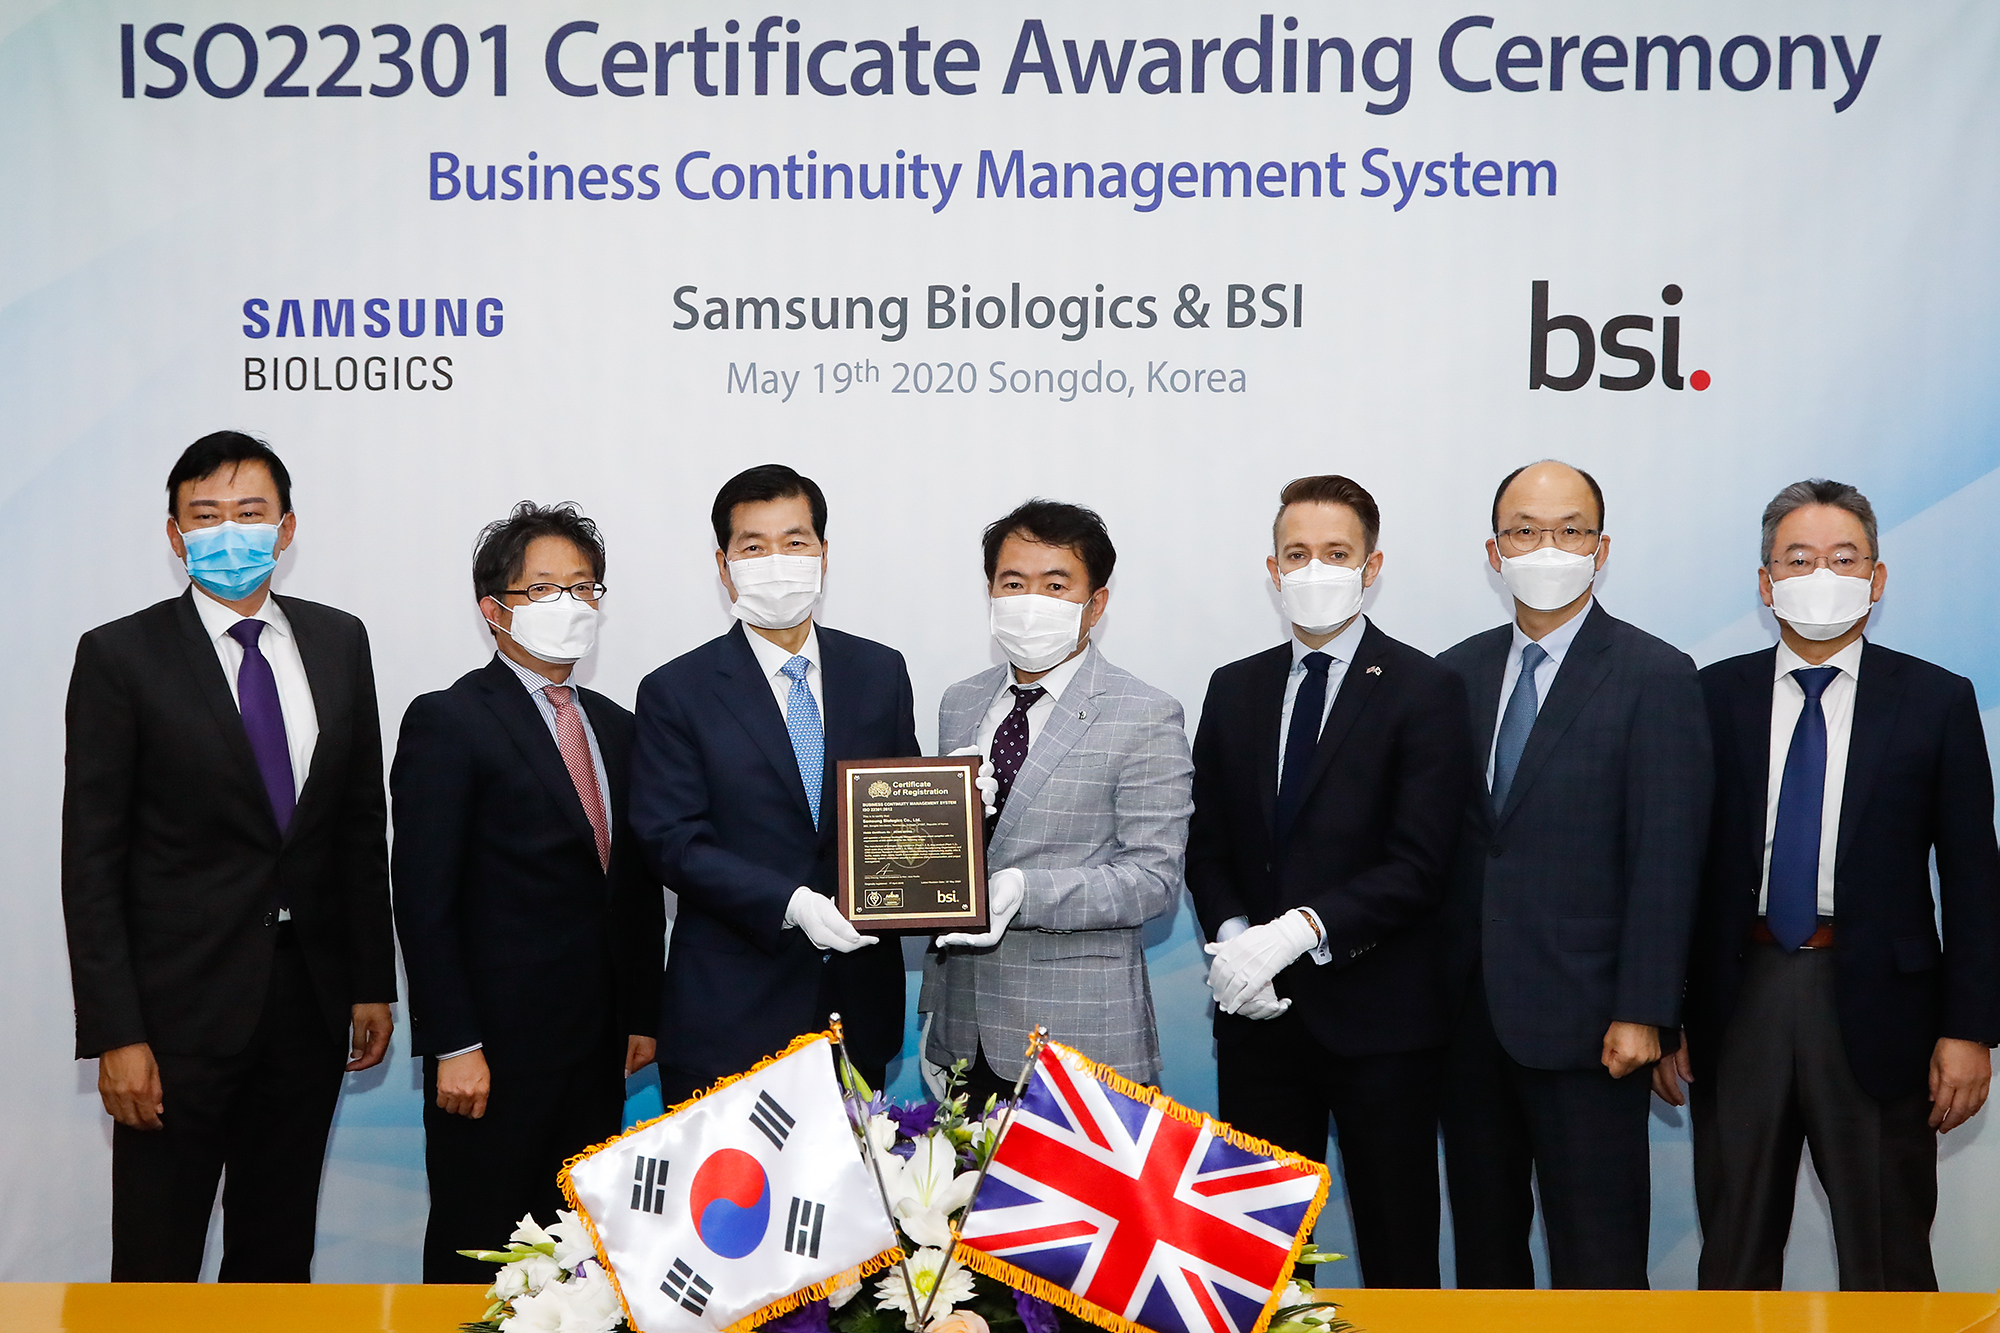 Samsung Biologics has attained ISO22301 certification for additional business operations, demonstrating its unsurpassed commitment to ensuring client satisfaction and operational excellence through its world-class business continuity mana